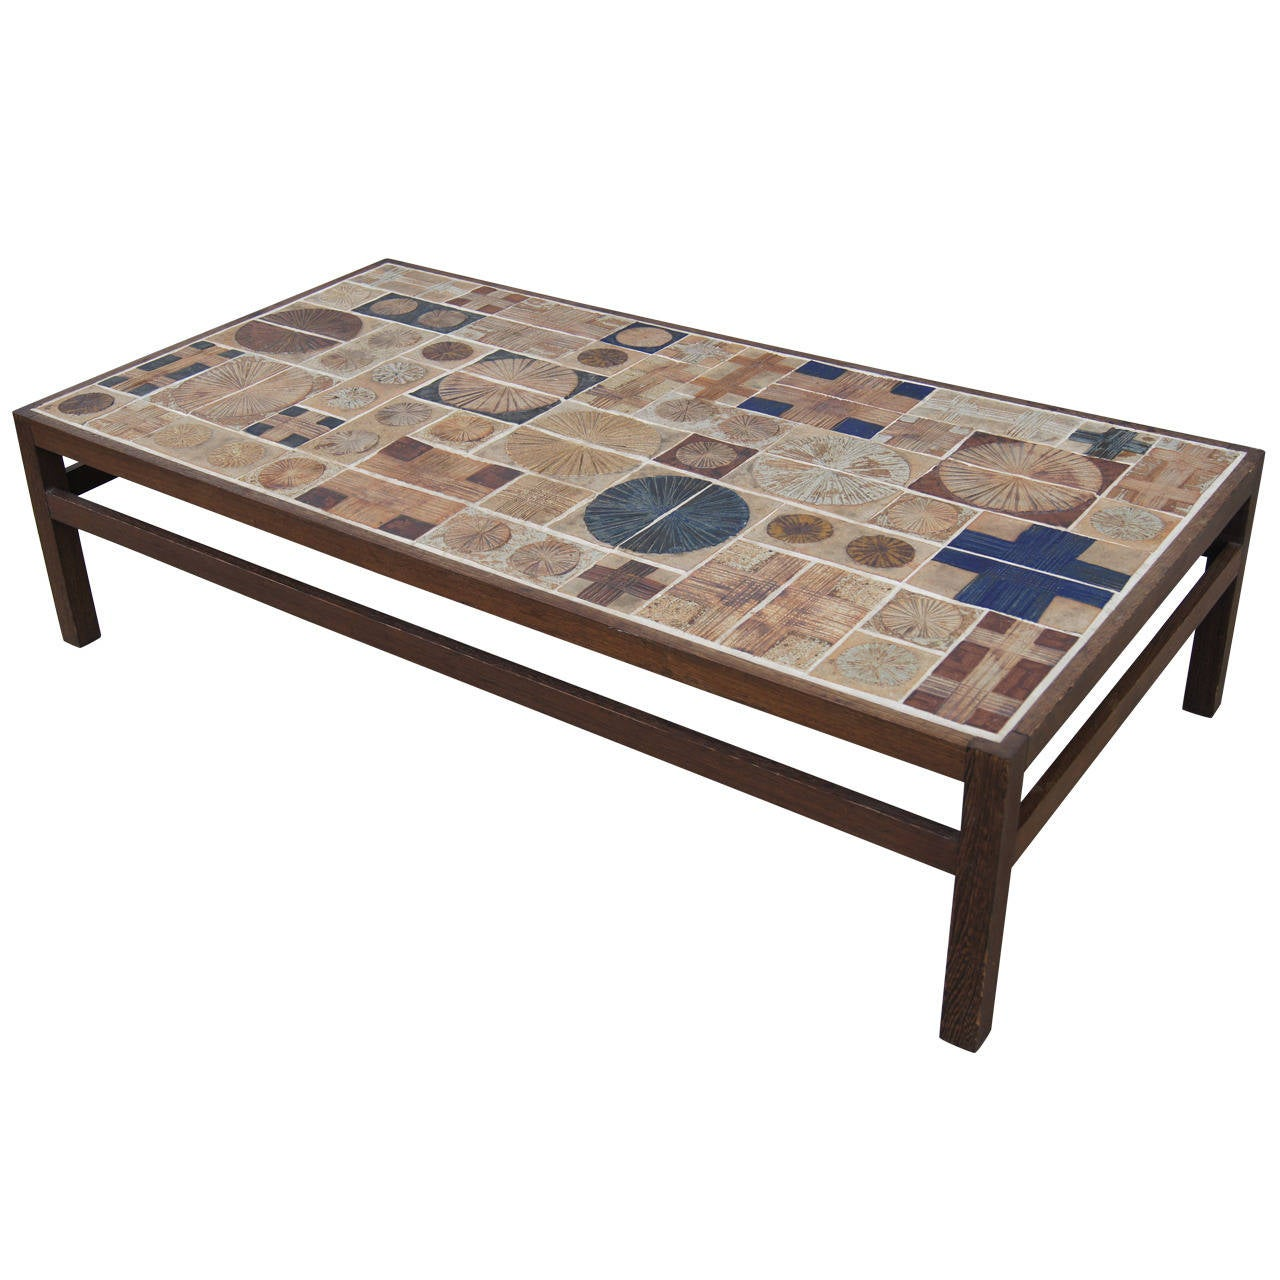 Coffee Table By Willy Beck With Ceramic Tile Top By Tue Poulsen At 1stdibs